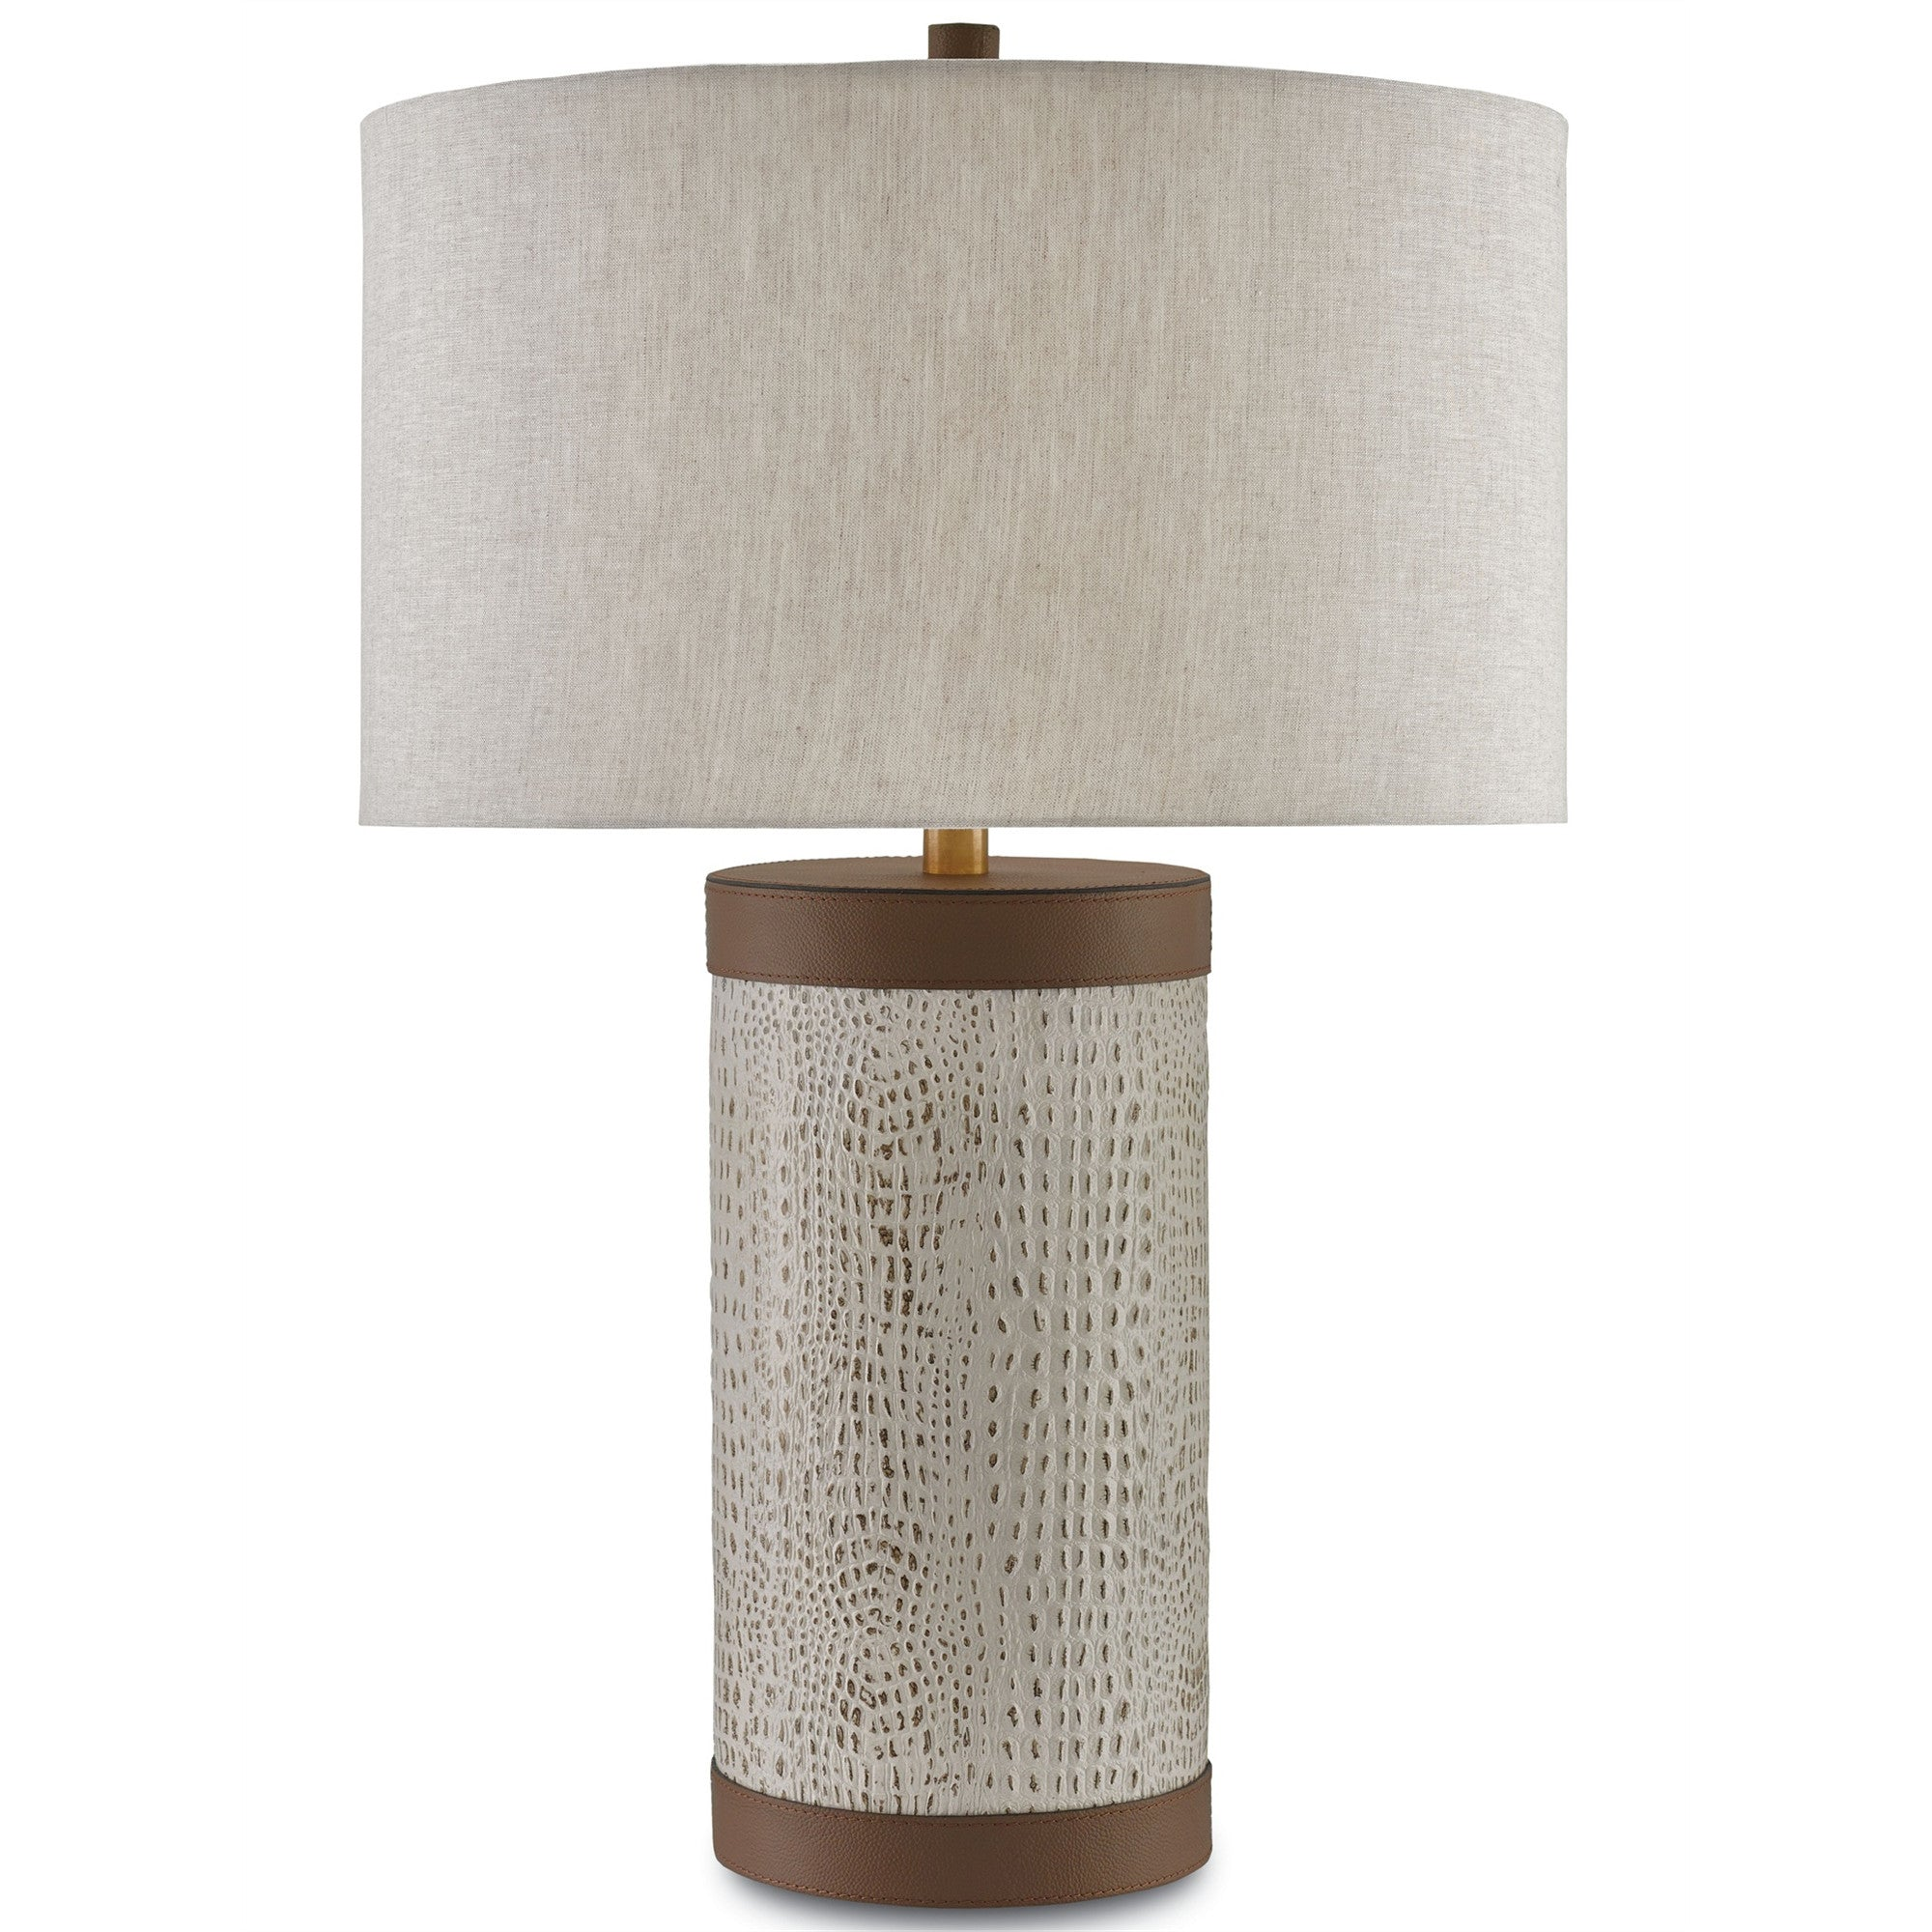 Currey and Co - Baptiste Table Lamp